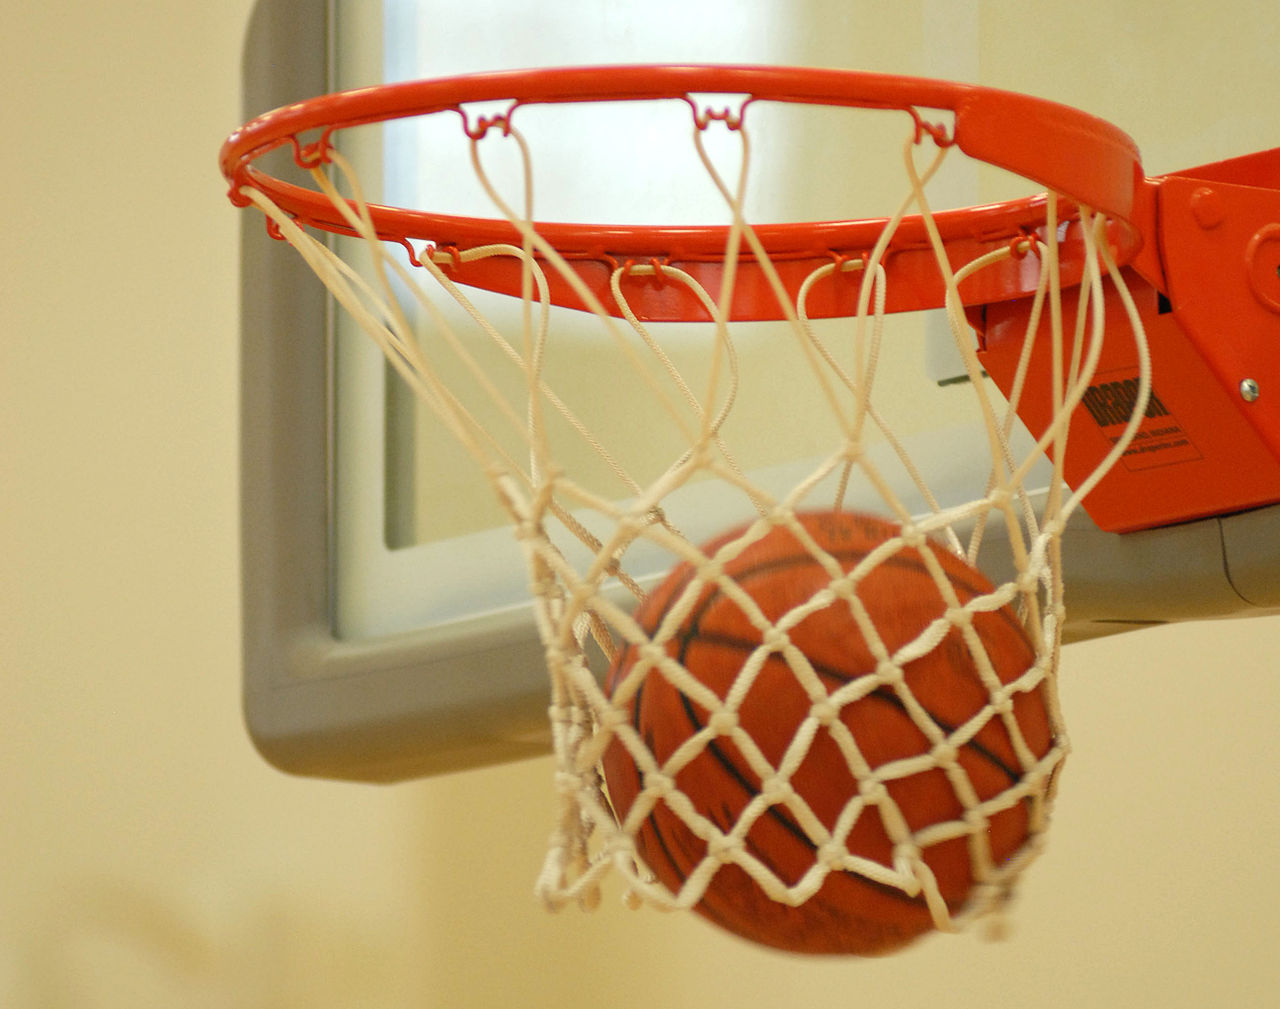 File:Basketball through hoop. ...